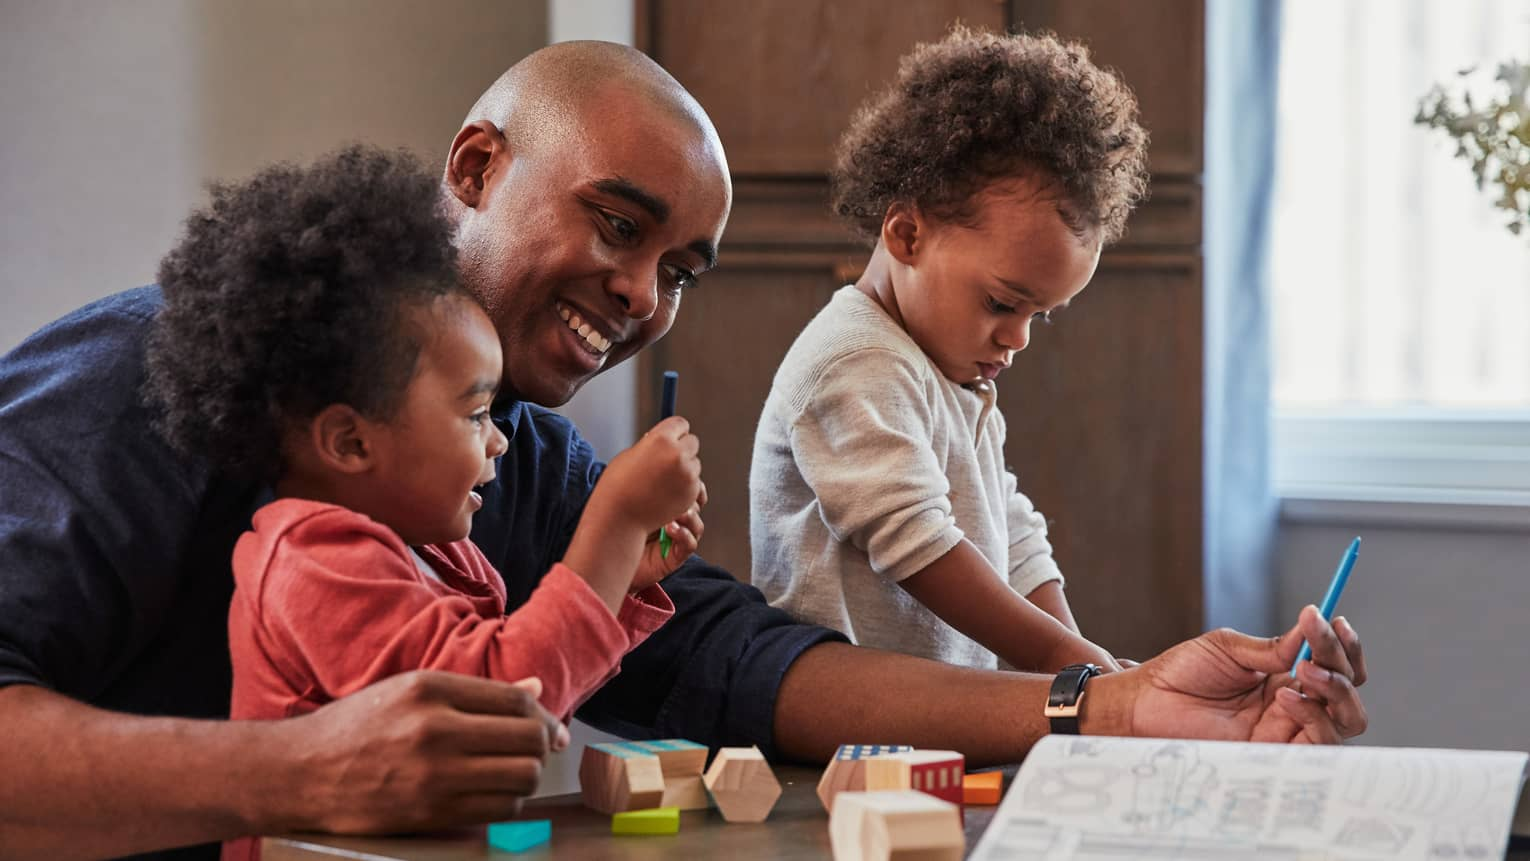 A smiling man and two toddler girls play with blocks